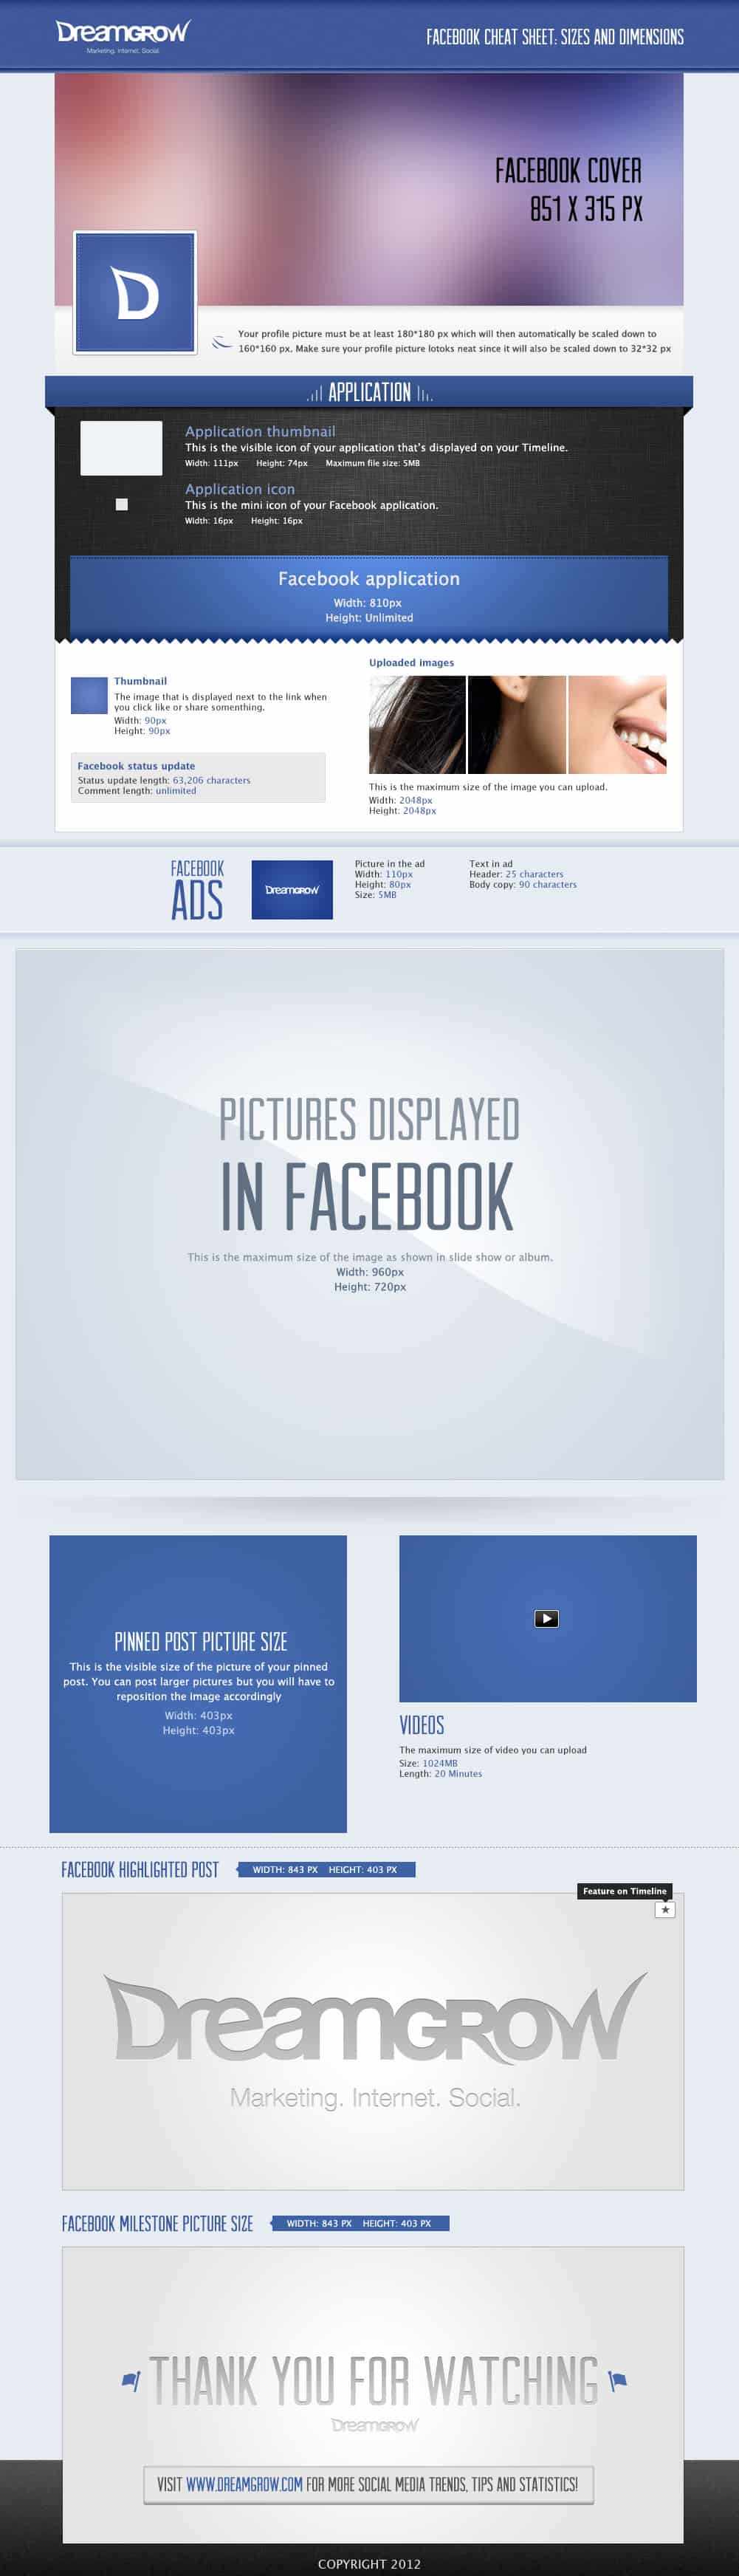 Seemly Facebook Cheat All Sizes Dimensions 2018 2018 Standard Poster Frame Sizes Target Standard Poster Frame Sizes Hobby Lobby photos Standard Poster Frame Sizes